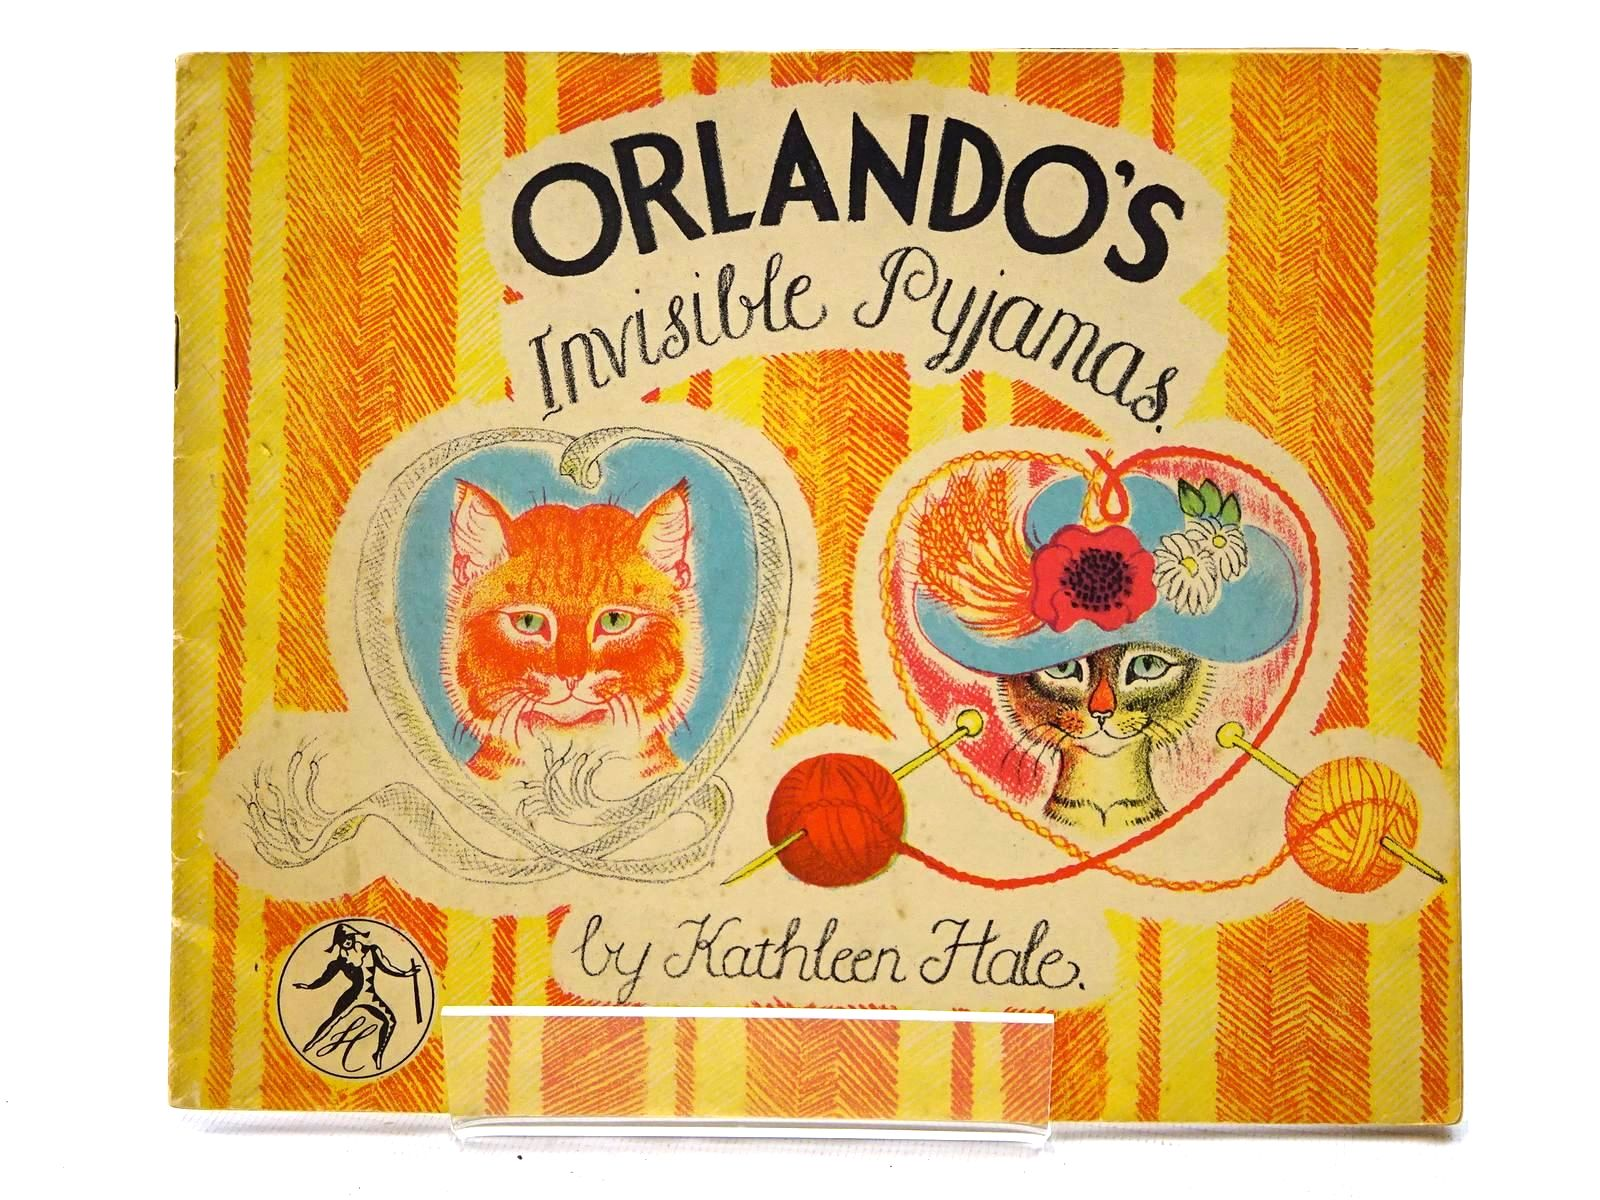 Photo of ORLANDO'S INVISIBLE PYJAMAS written by Hale, Kathleen illustrated by Hale, Kathleen published by Transatlantic Arts Ltd., Royle Publications Ltd. (STOCK CODE: 2125232)  for sale by Stella & Rose's Books